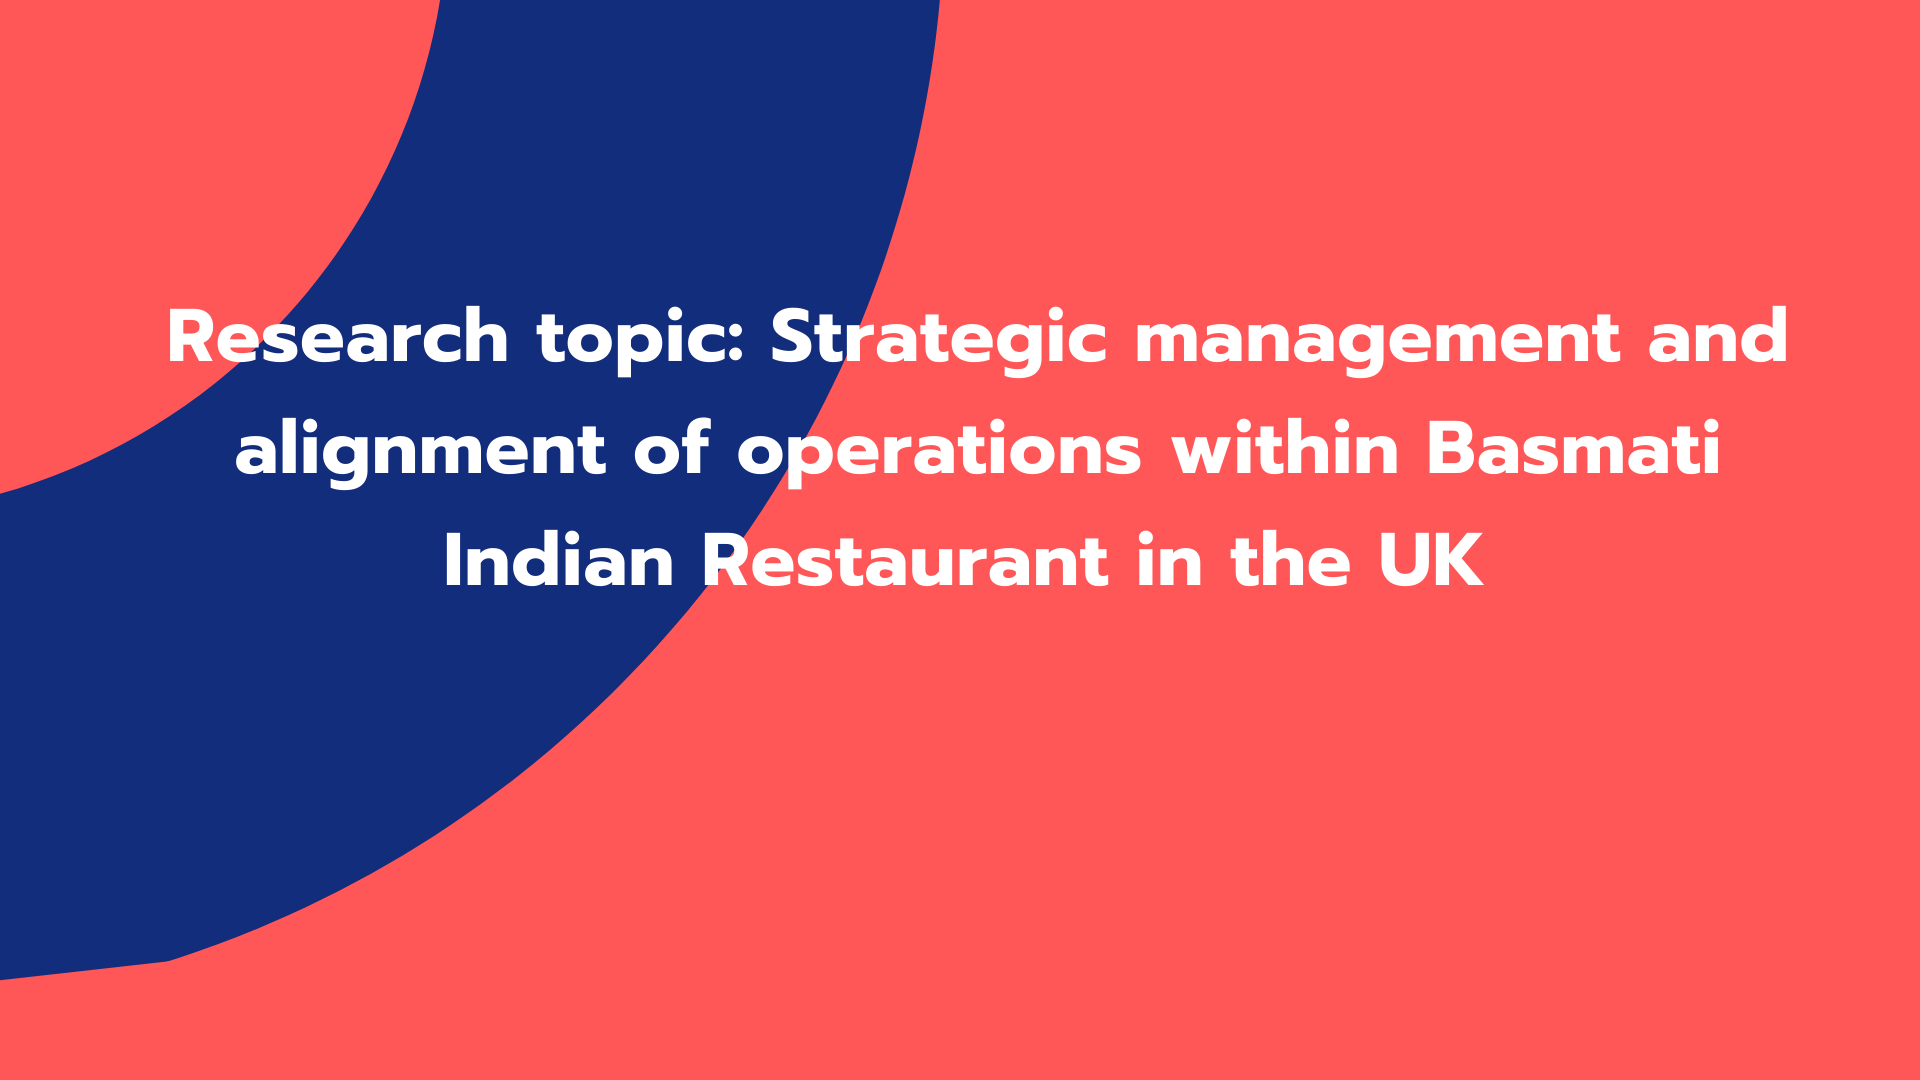 Strategic management and alignment of operations within Basmati Indian Restaurant in UK